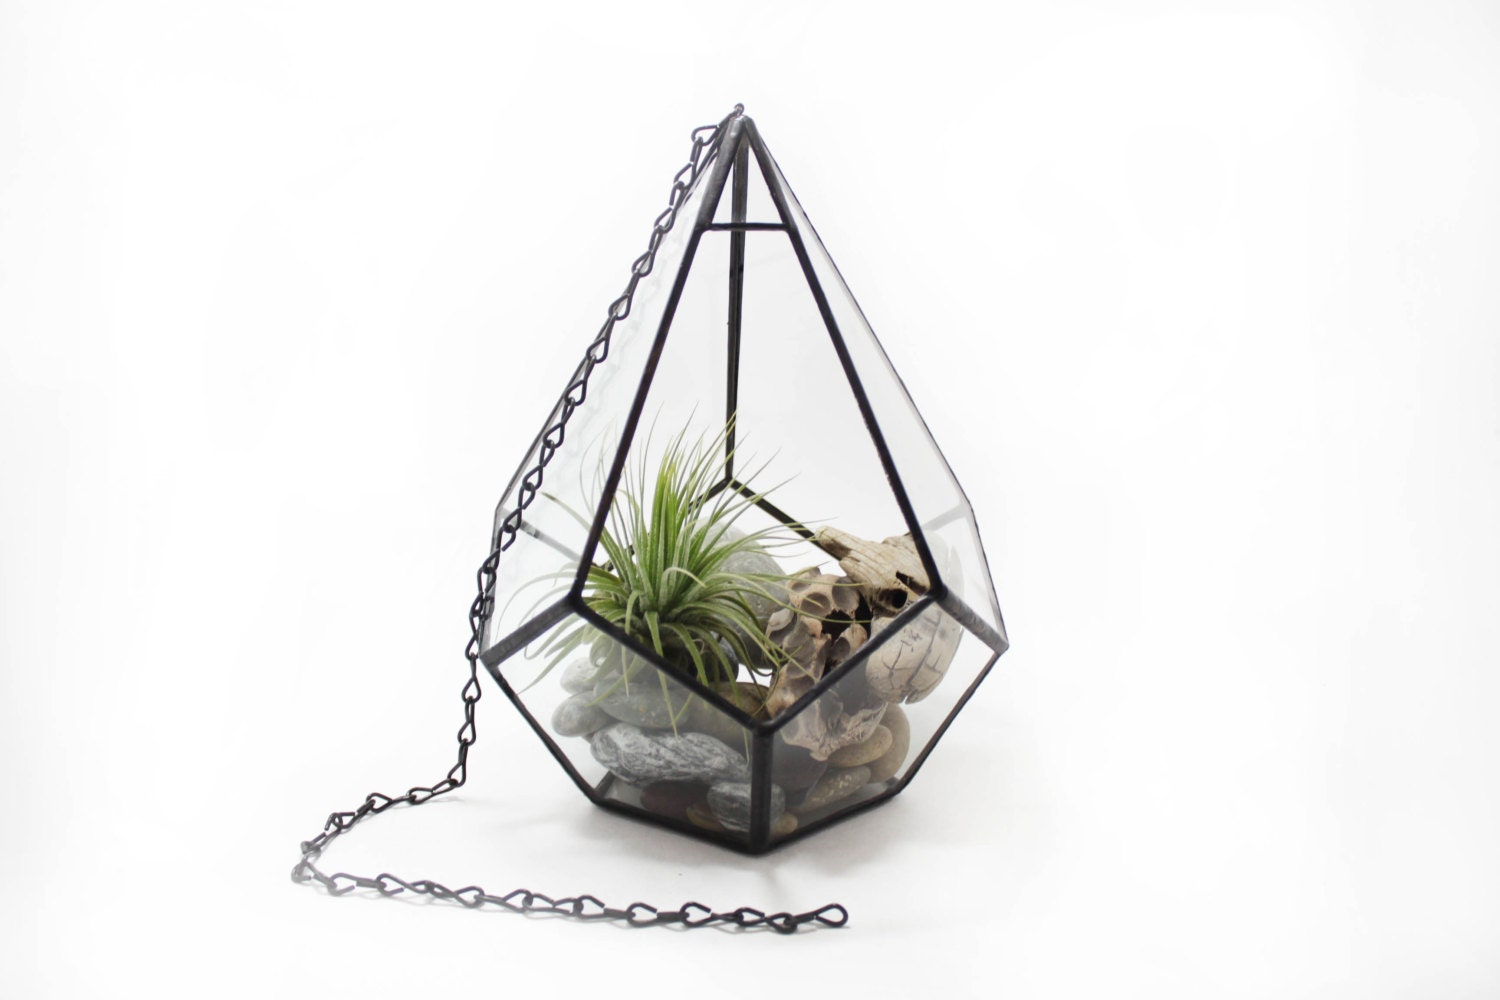 🔎zoom - Hanging Terrarium Large Teardrop / Geometric Stained Glass